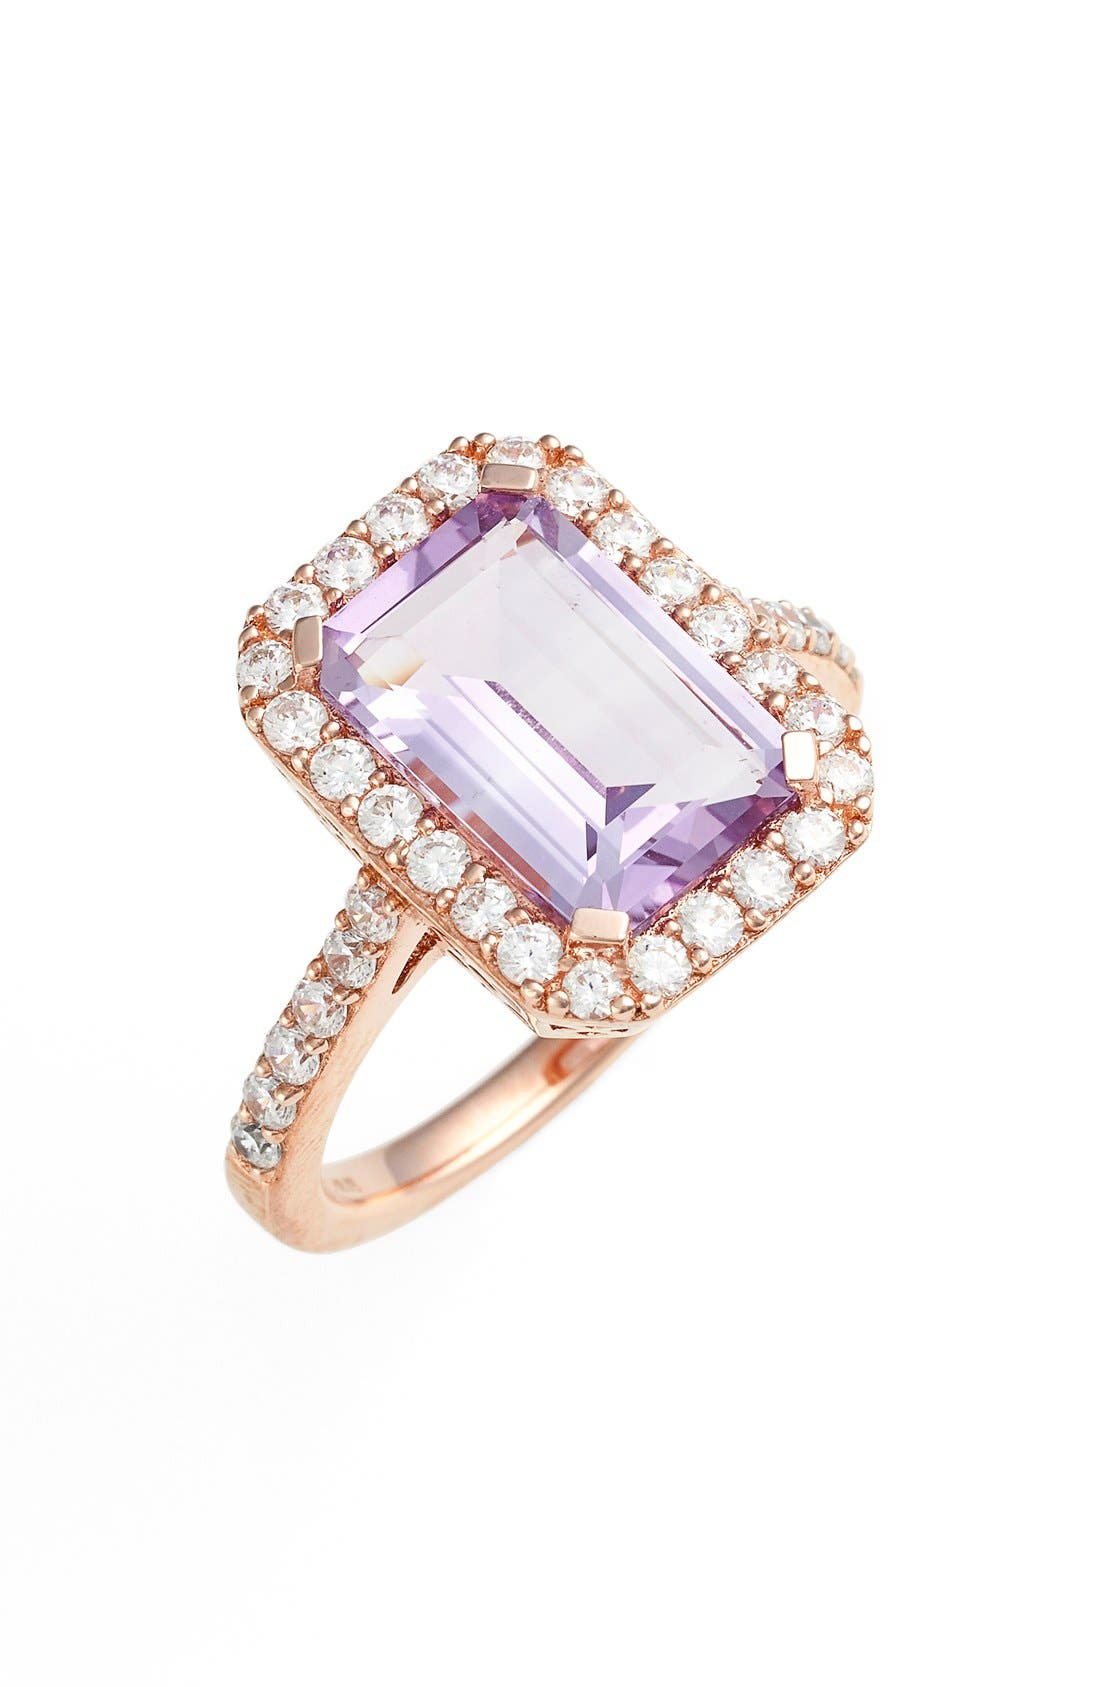 Lafonn 'Aria' Emerald Cut Ring